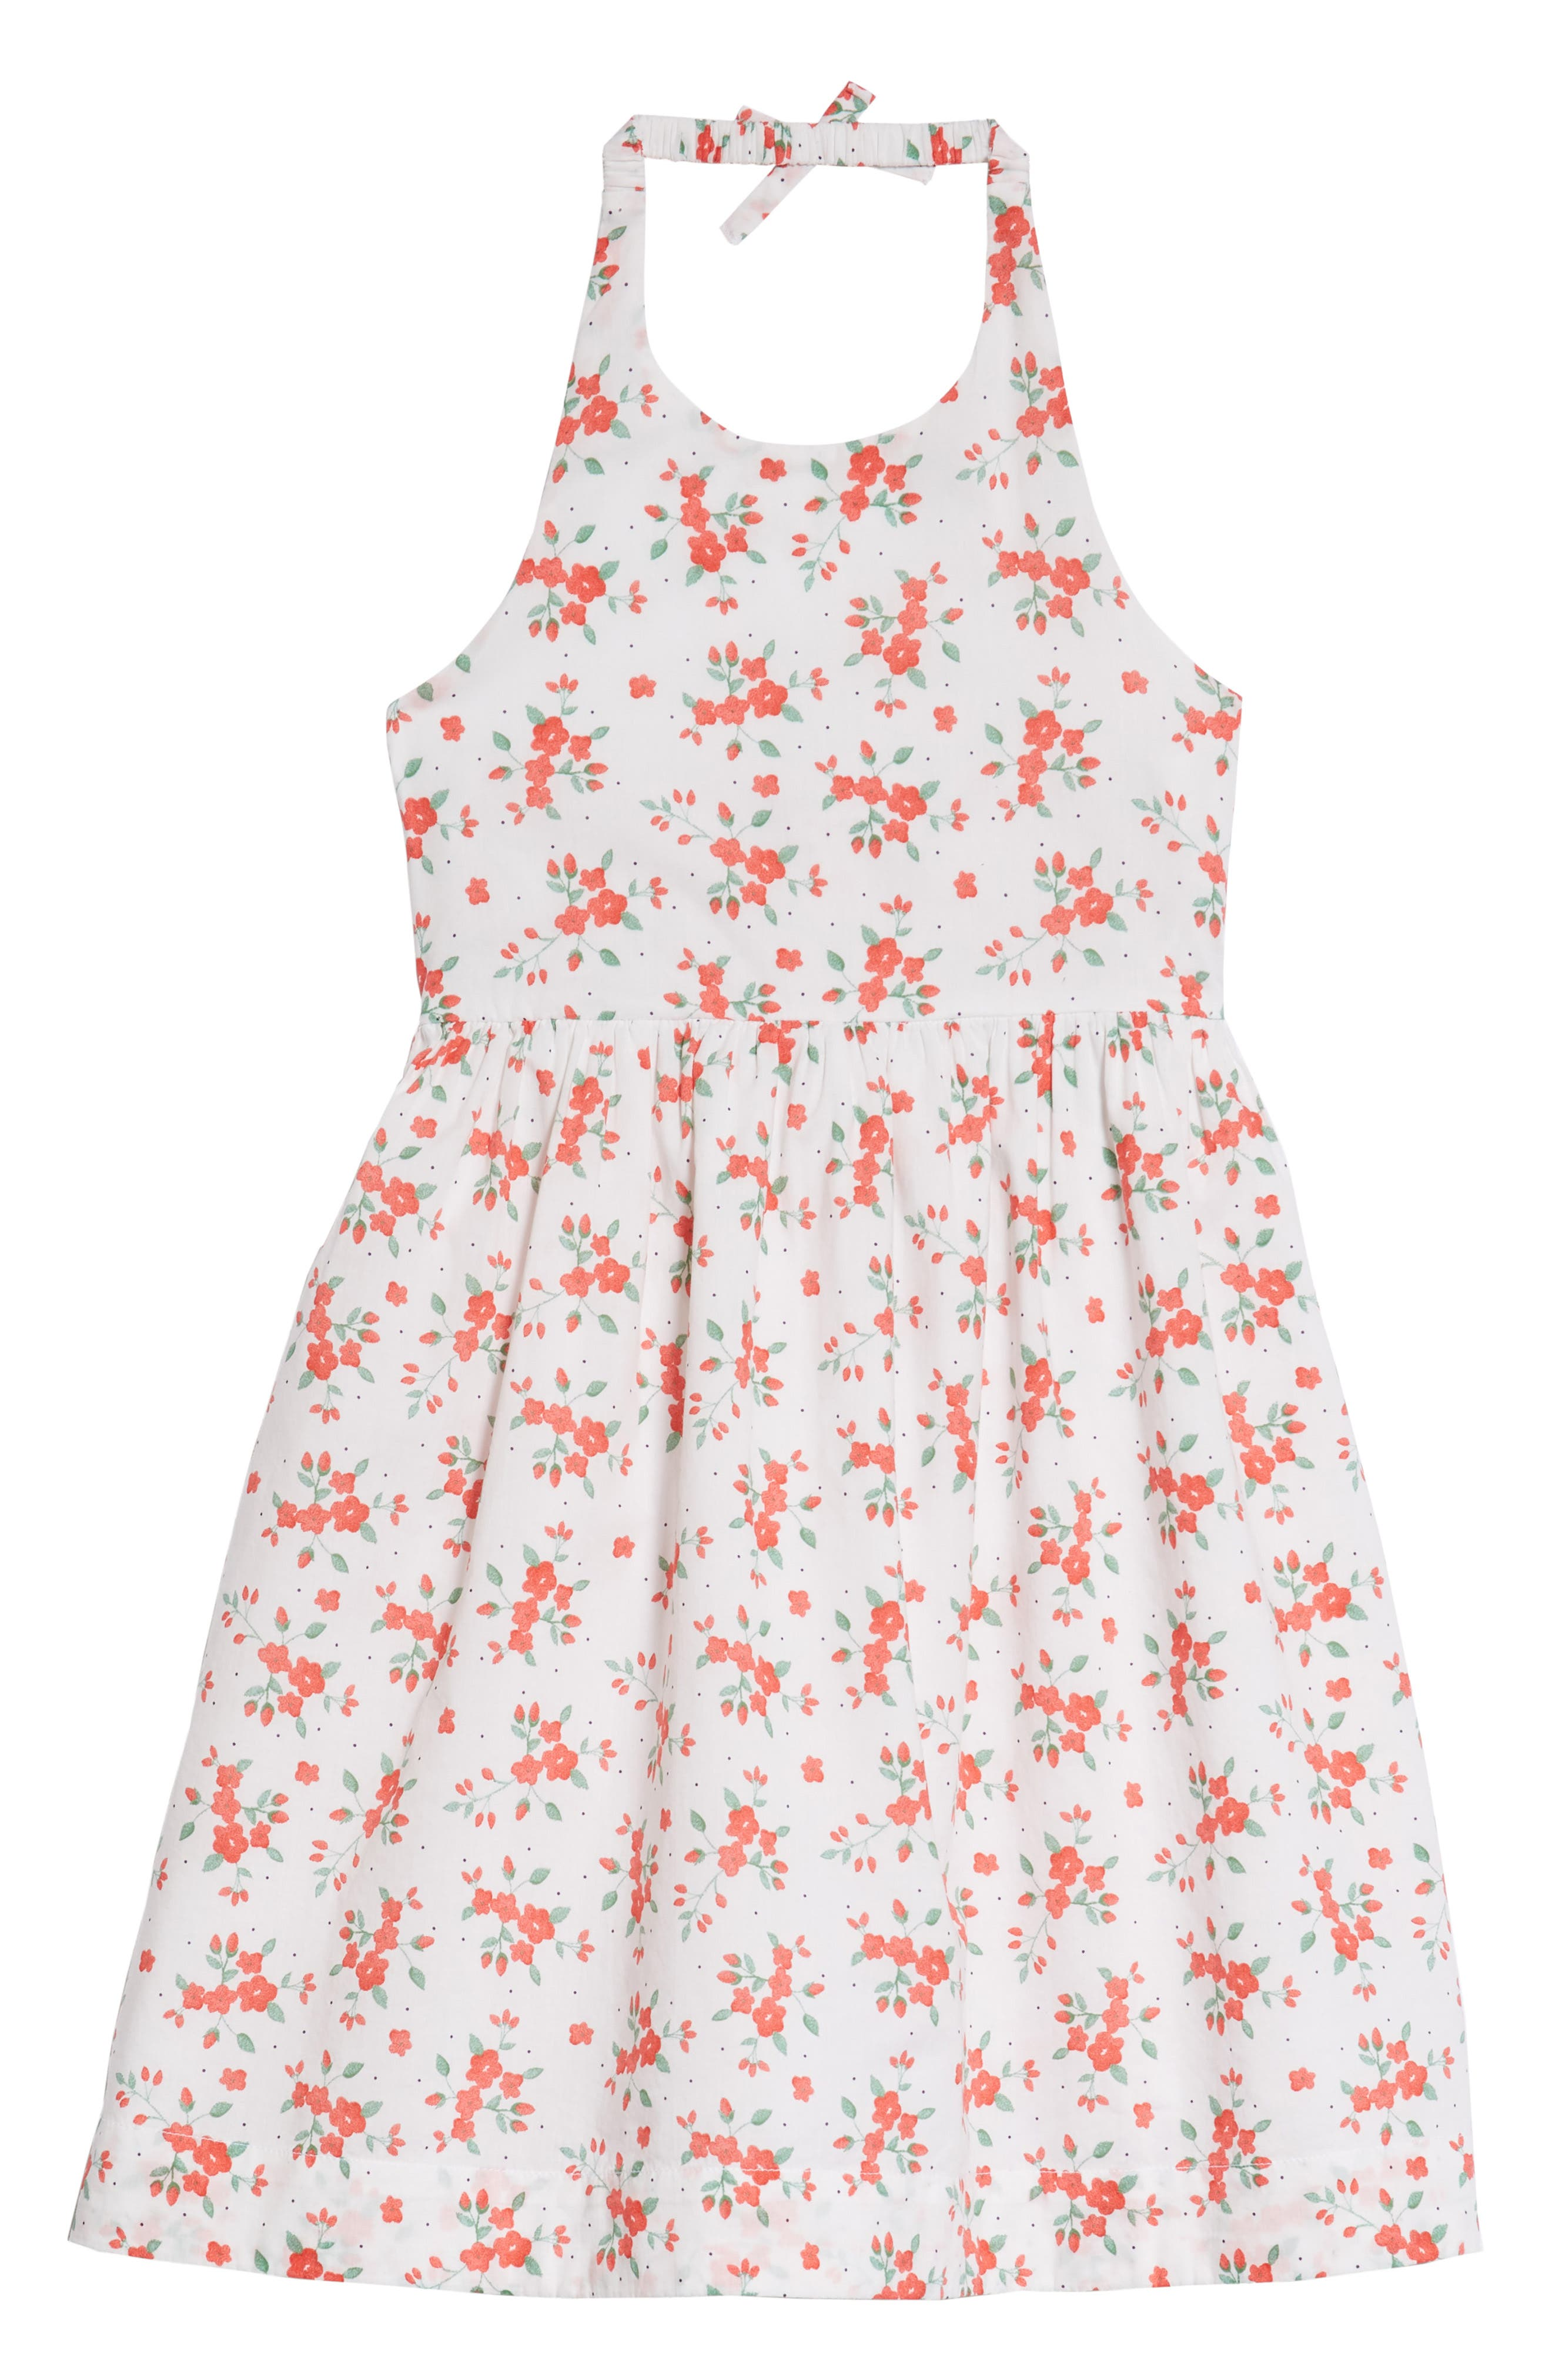 Ruby & Bloom Floral Halter Dress (Toddler Girls, Little Girls & Big Girls)